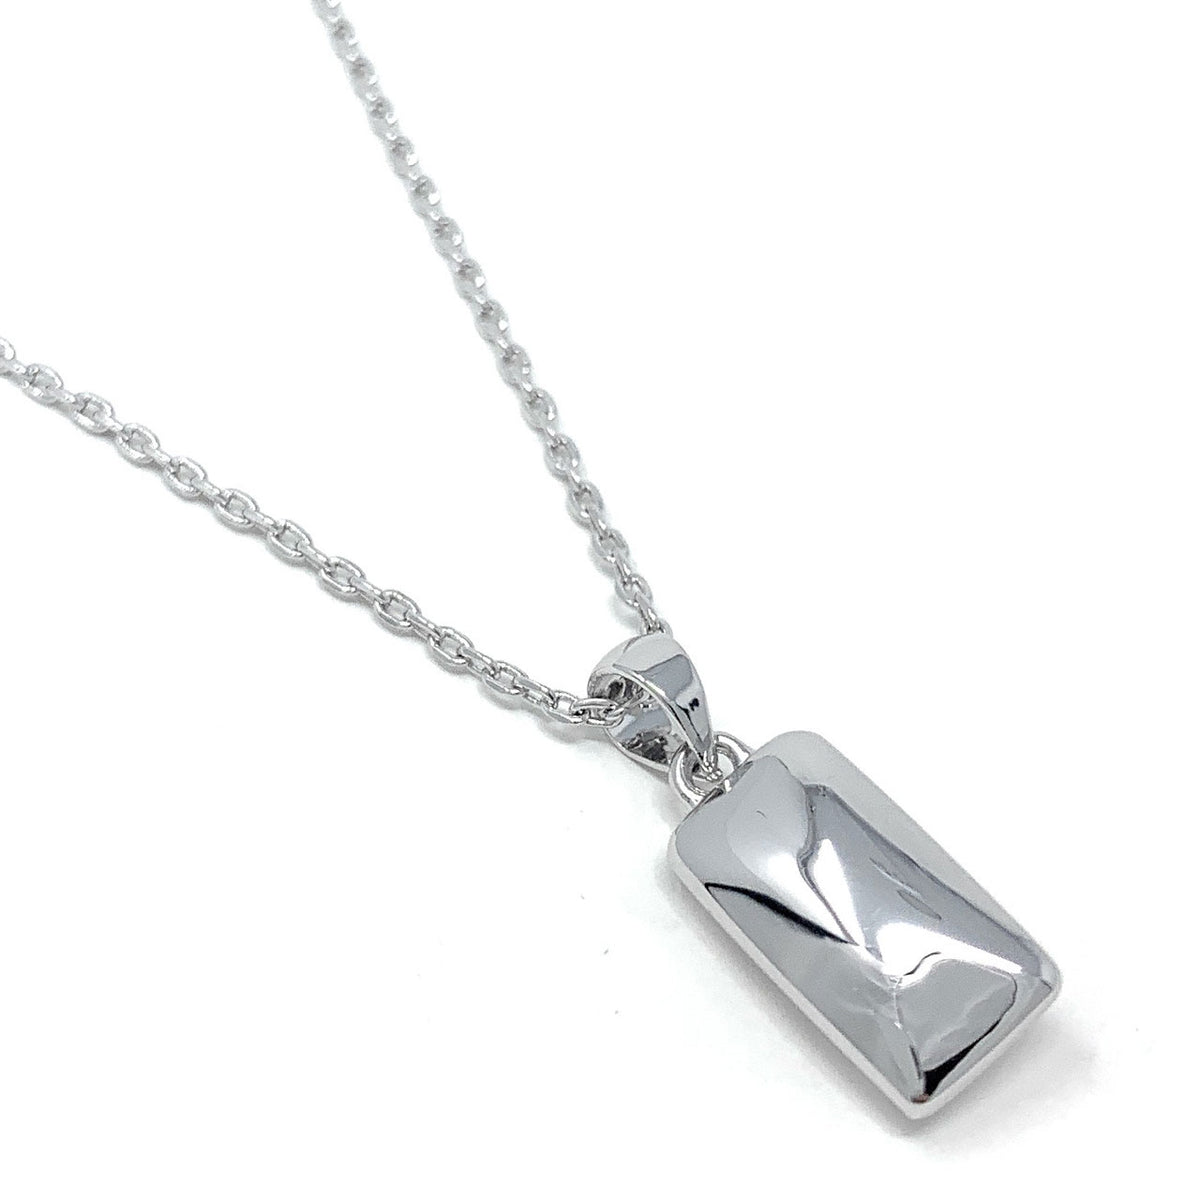 Sophia Pendant Necklace with White Clear Rectangle Crystals from Swarovski Silver Toned Rhodium Plated - Ed Heart